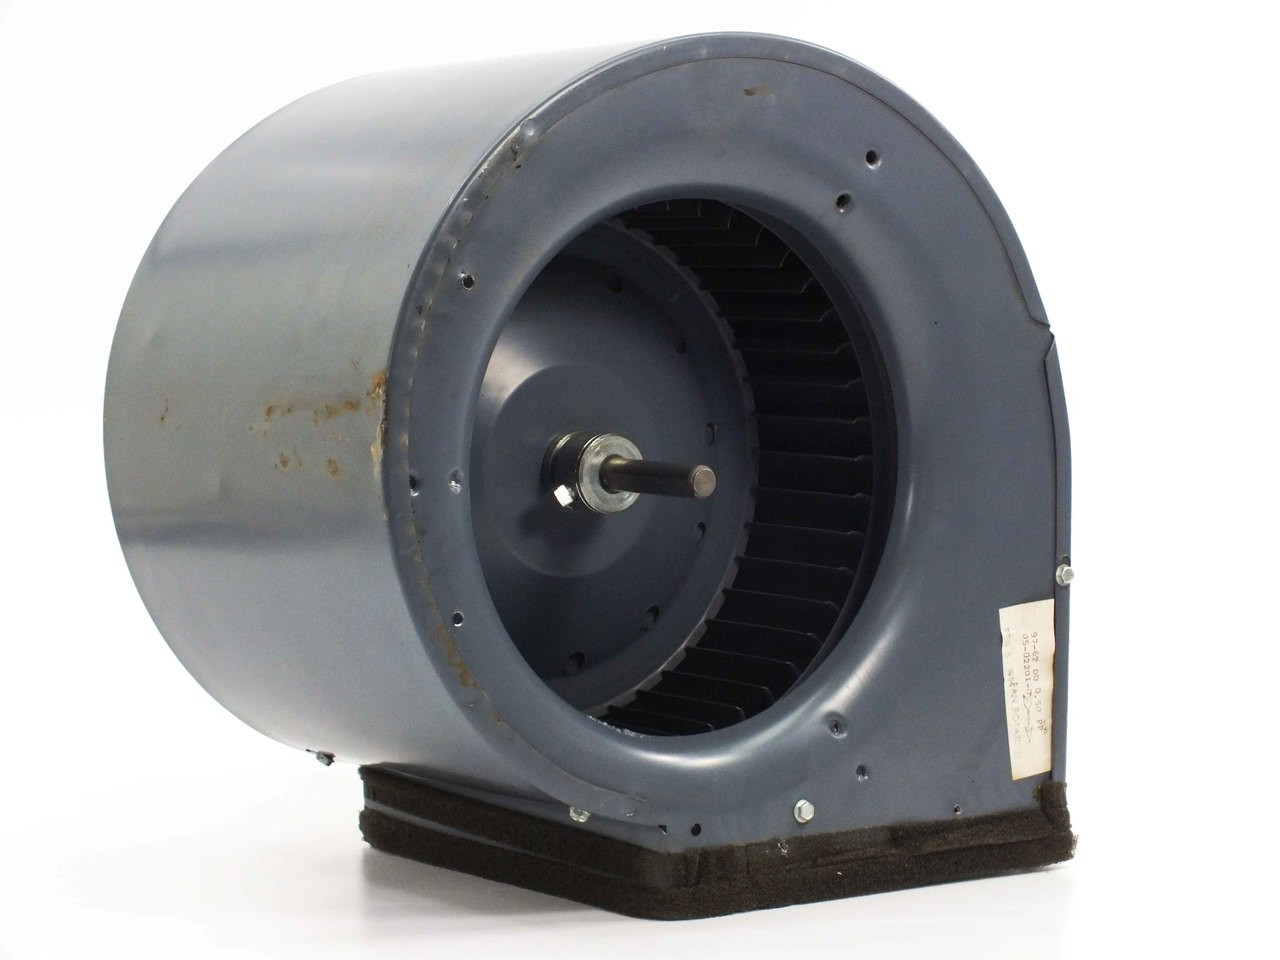 Ge 5kcp39fg motor 1 4 hp 1625 rpm 115vac 4a with squirrel for Ge commercial motors 5kcp39fg